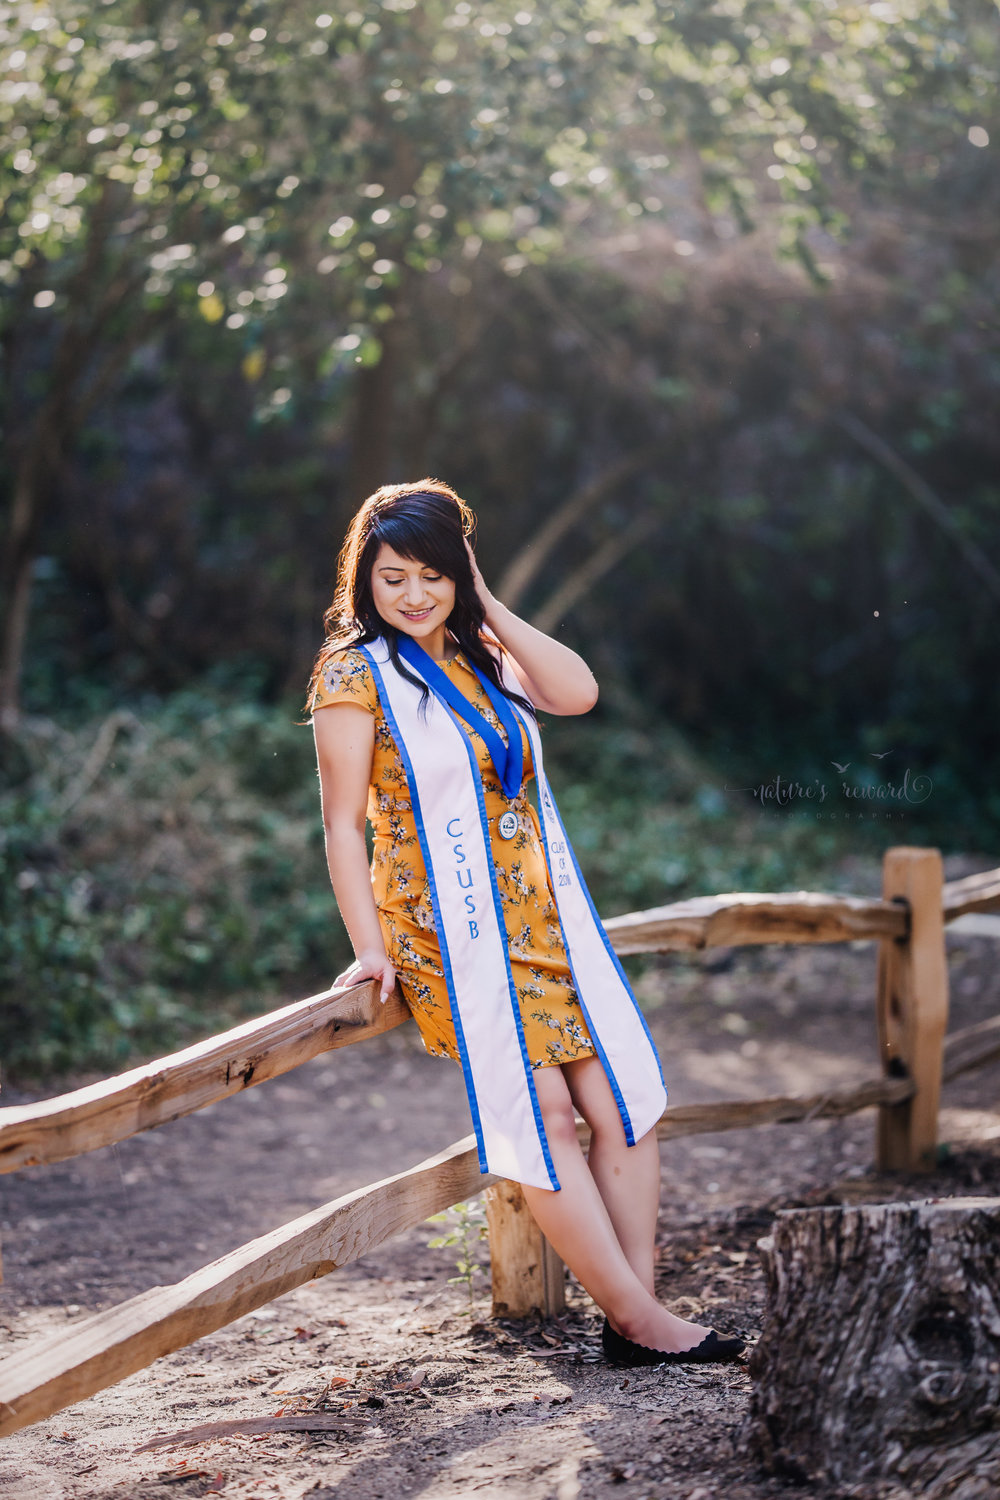 Class of 2018, California State University, San Bernardino Graduate wearing a yellow dress and Medallion, bathed in light, surrounded by the lush green of a park in Redlands, California in this Senior Portrait by Nature's Reward Photography.